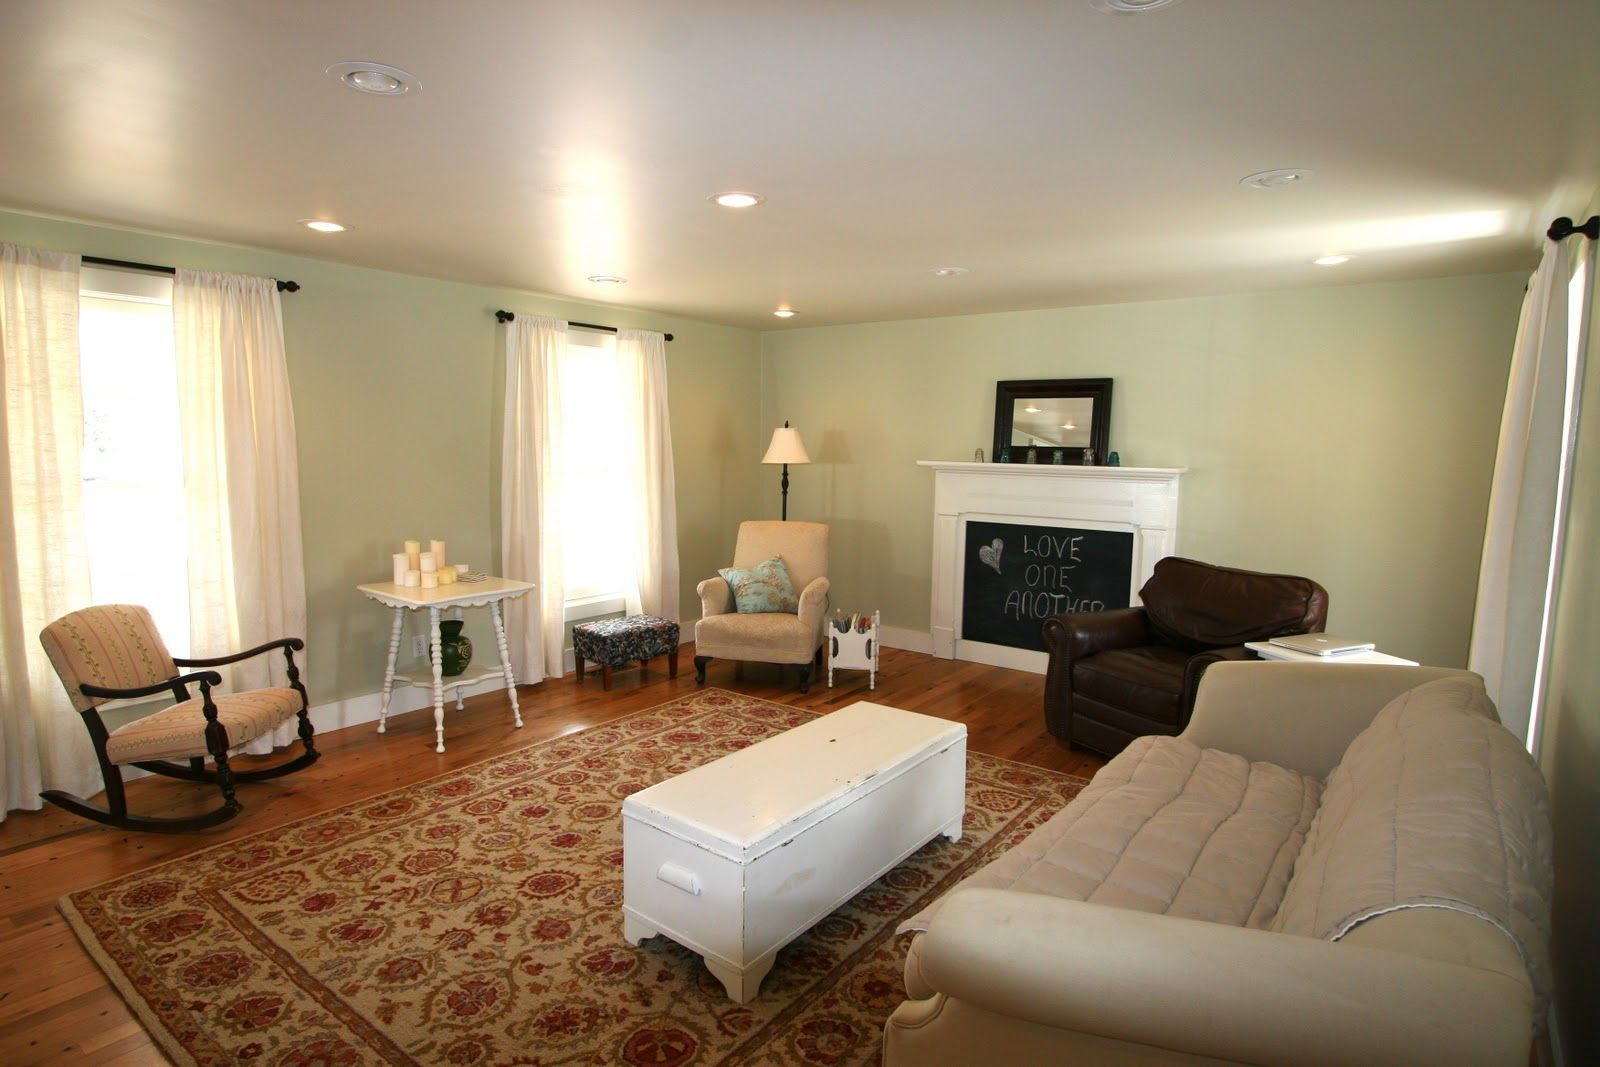 Explore Green Paint Colors Neutral And More Living Room